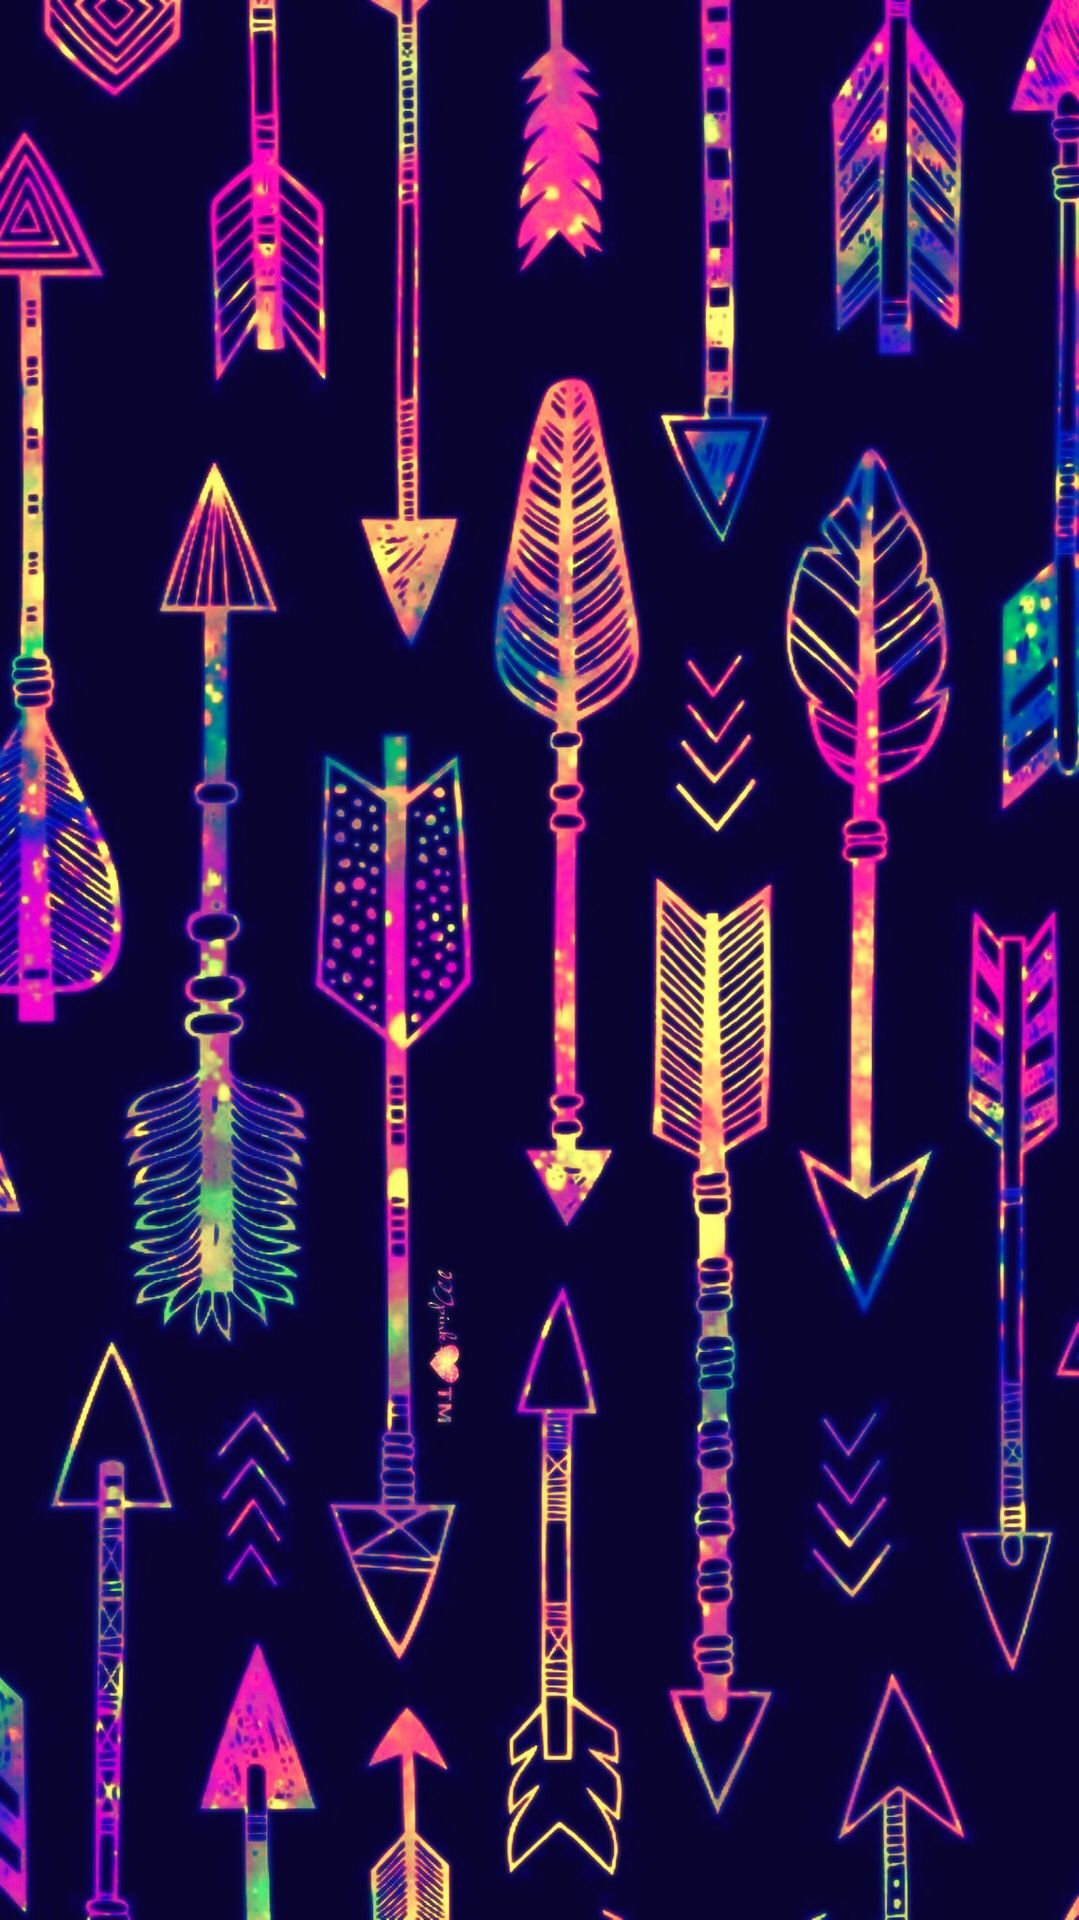 Neon Arrows Galaxy Wallpaper Androidwallpaper Girly Pattern Colorful Pattern Arrows Neon